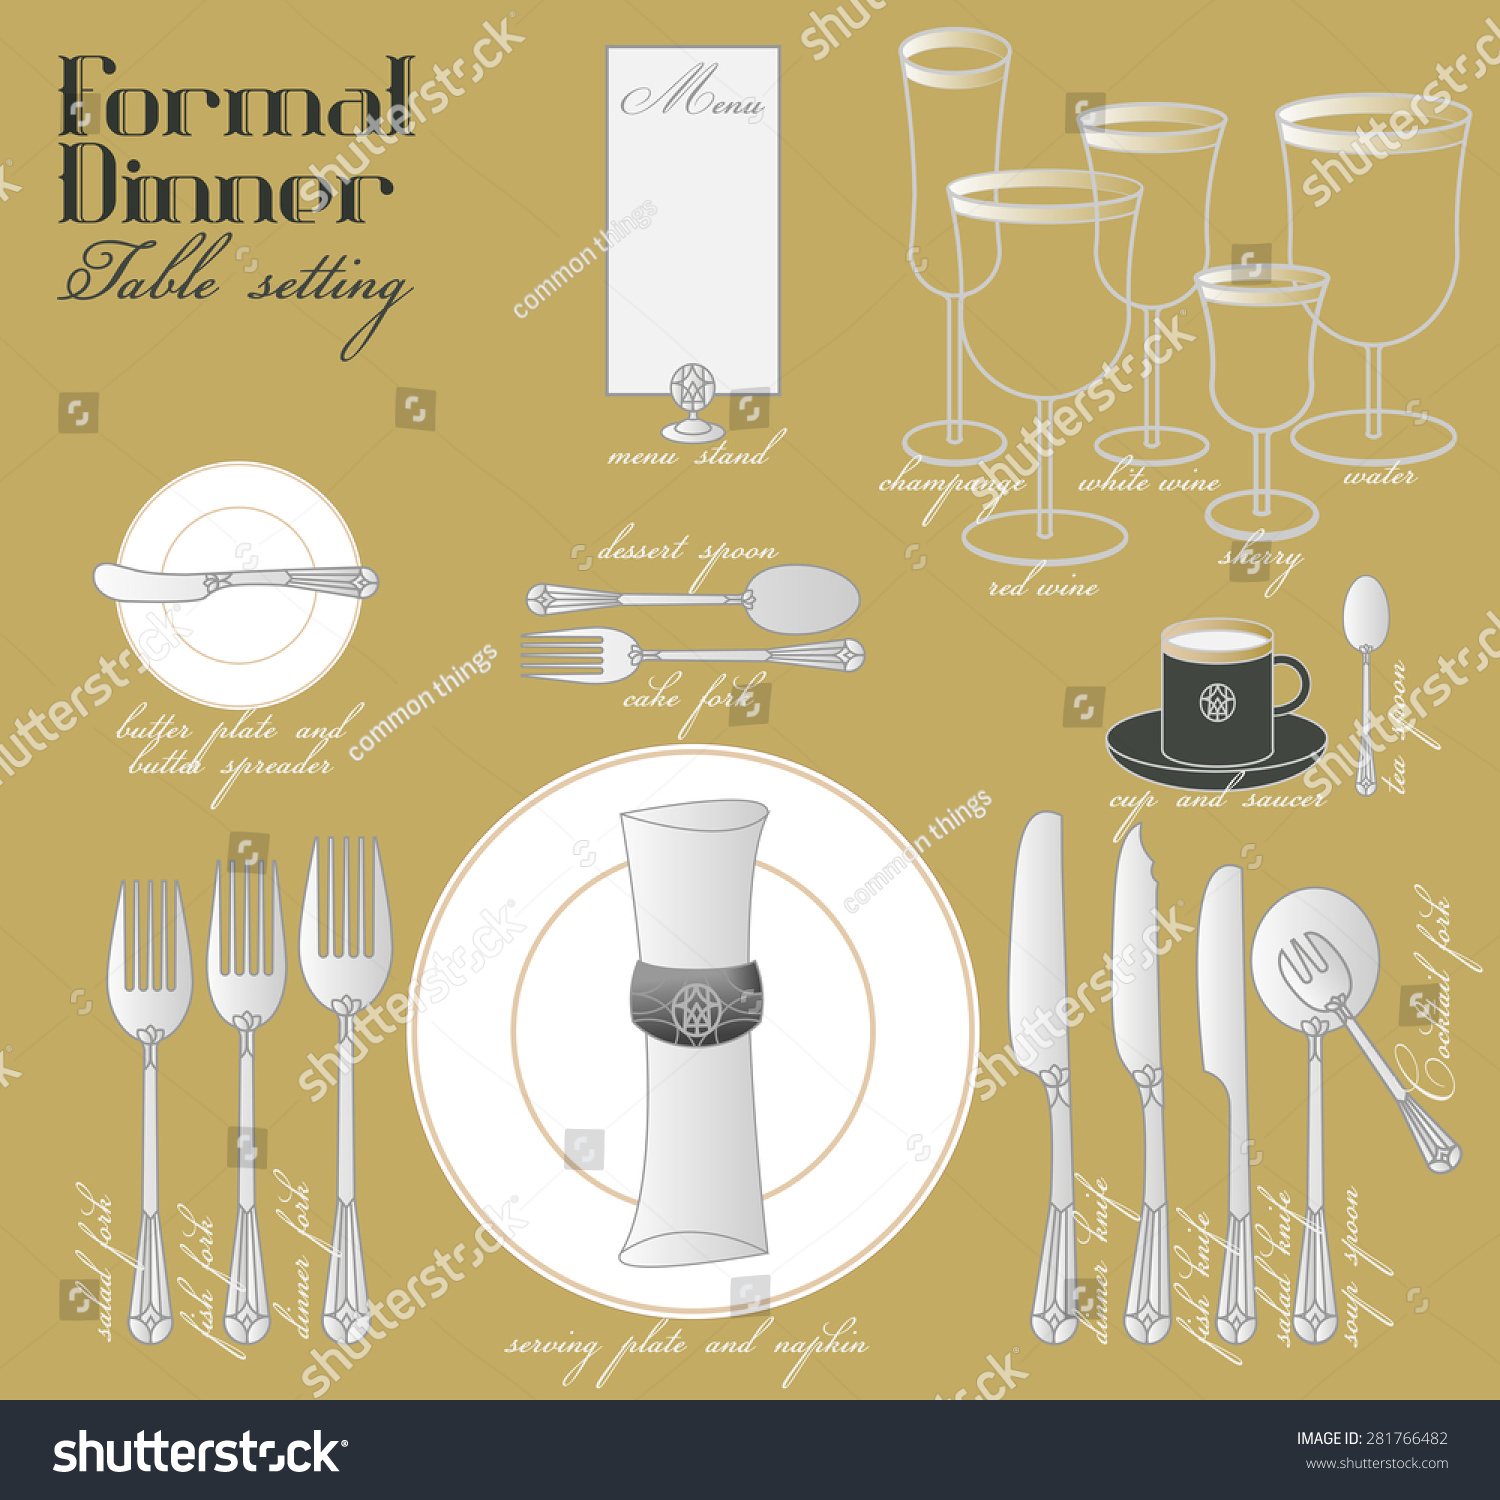 hight resolution of formal dinner table setting formal dining stock vector royalty free elegant table setting diagram